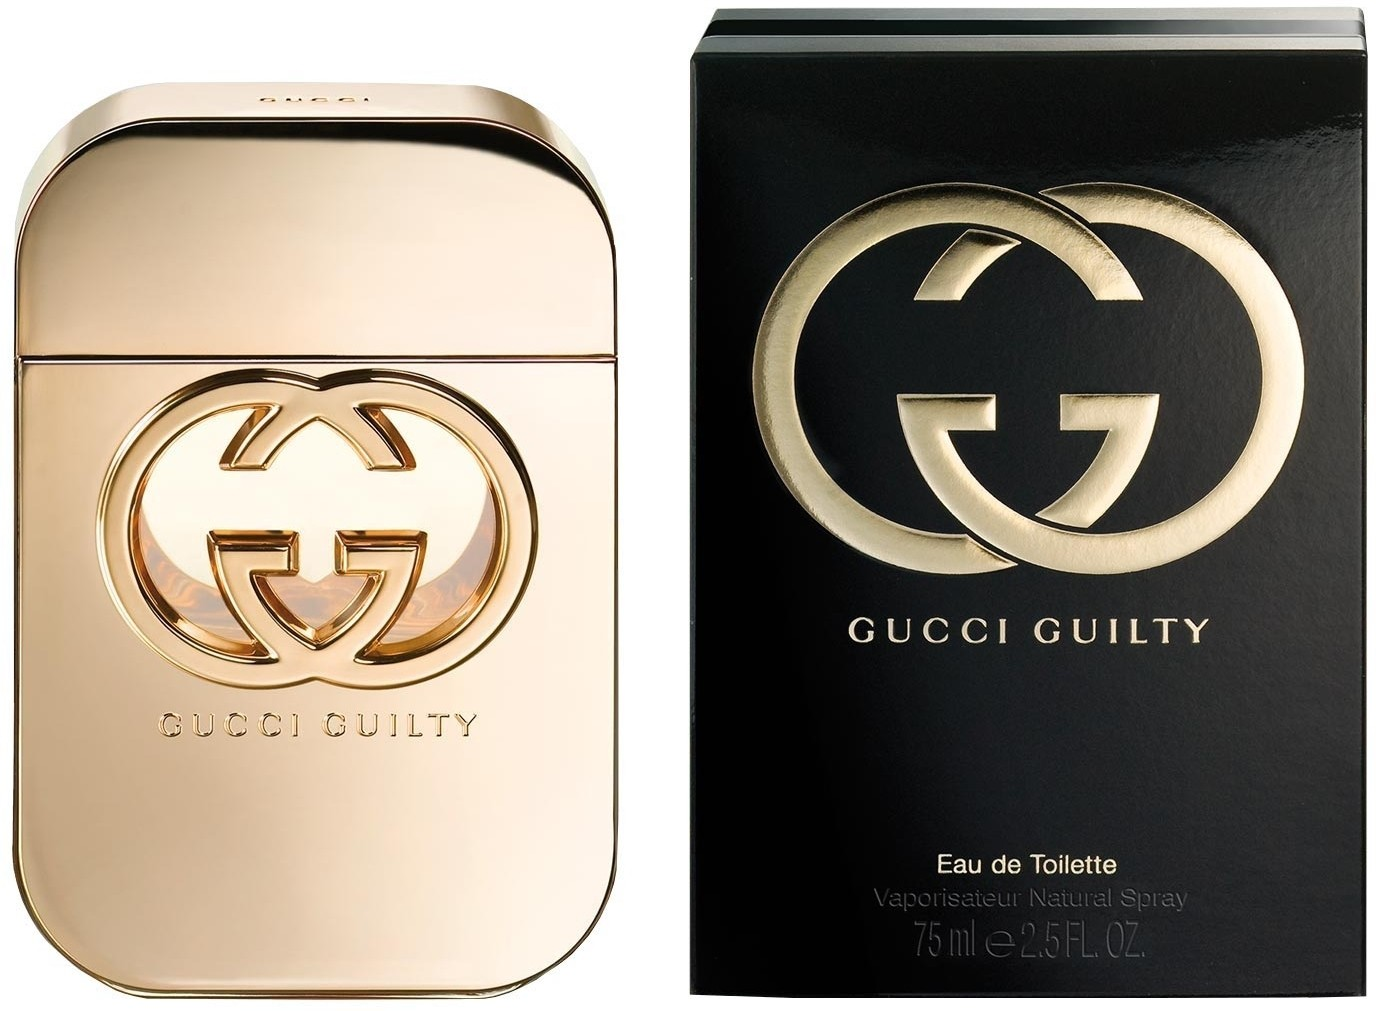 Guilty by Gucci for Women